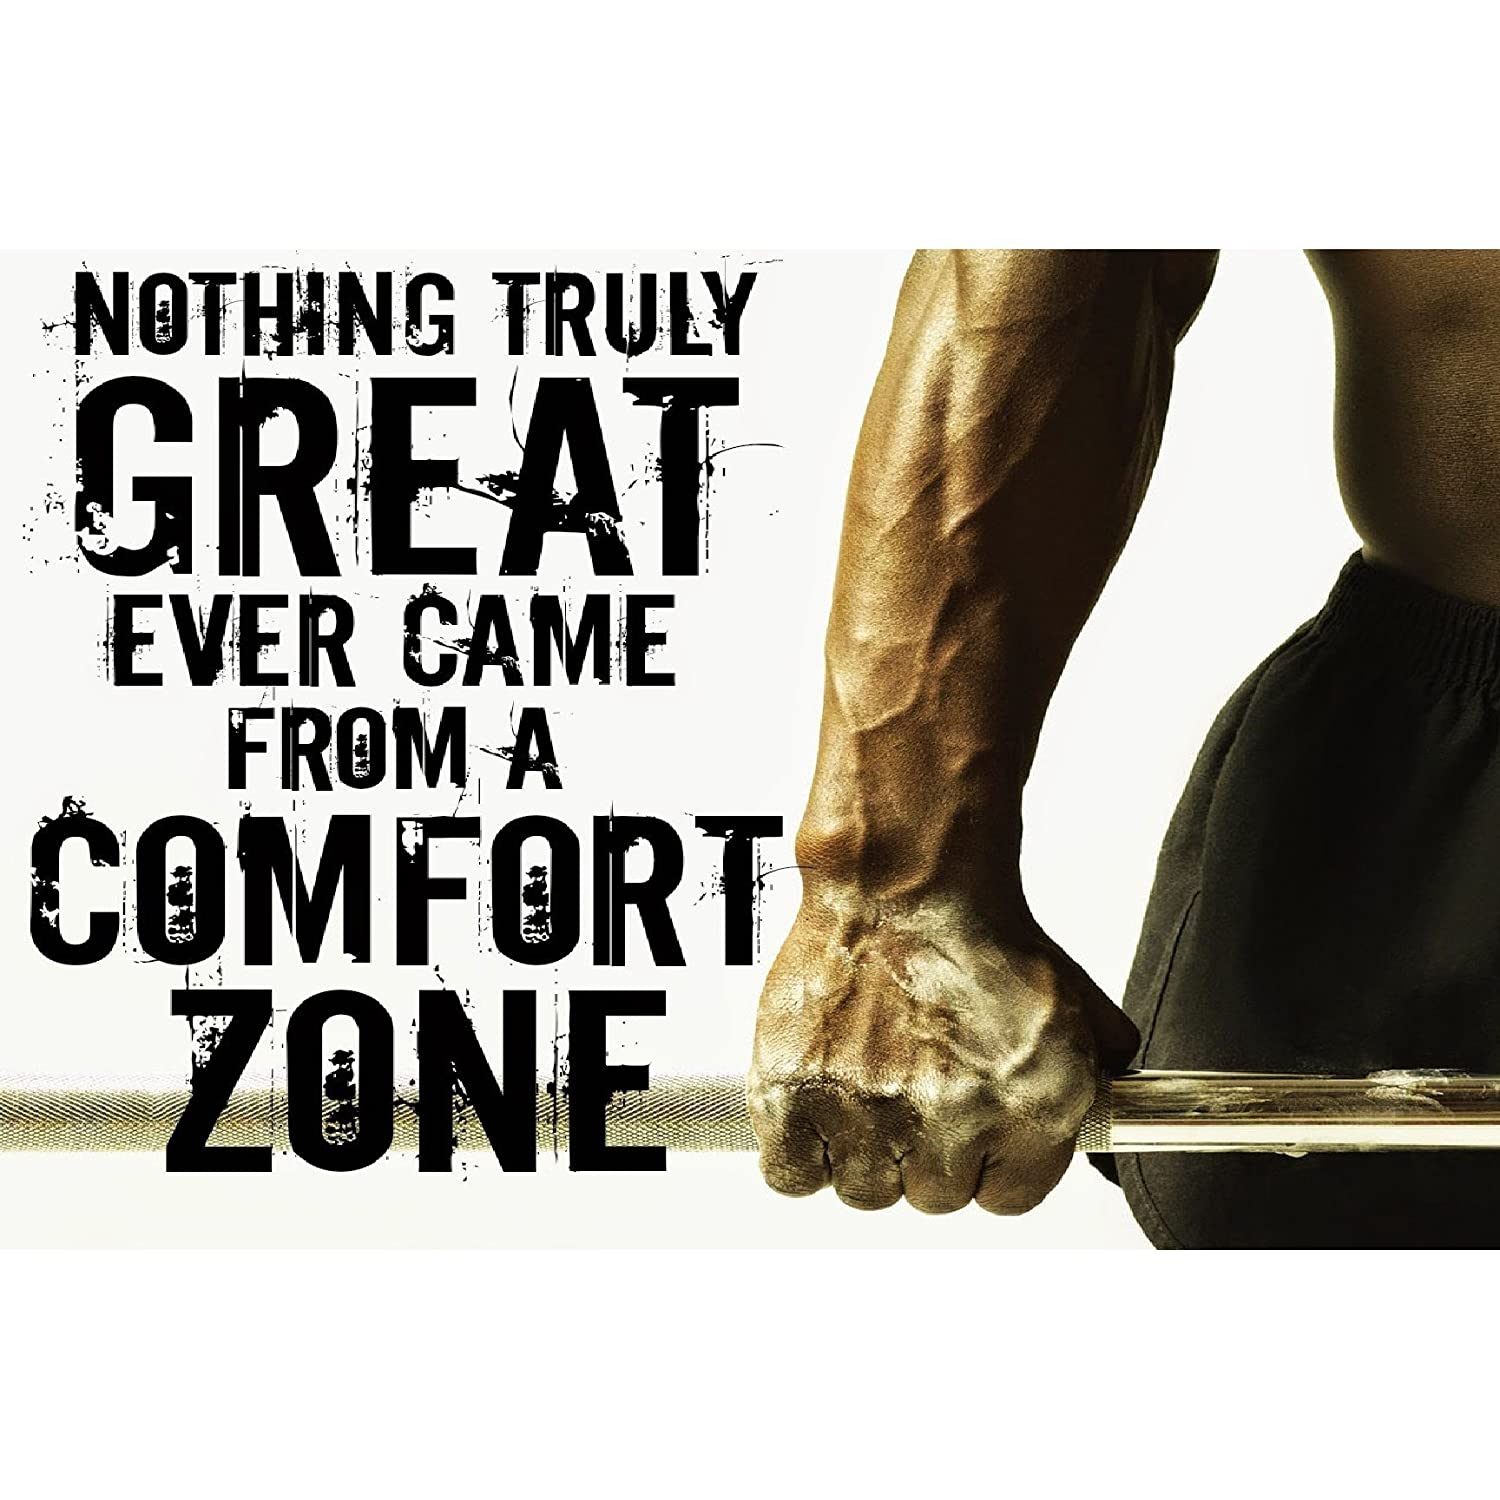 Printelligent gym inspirational quote poster